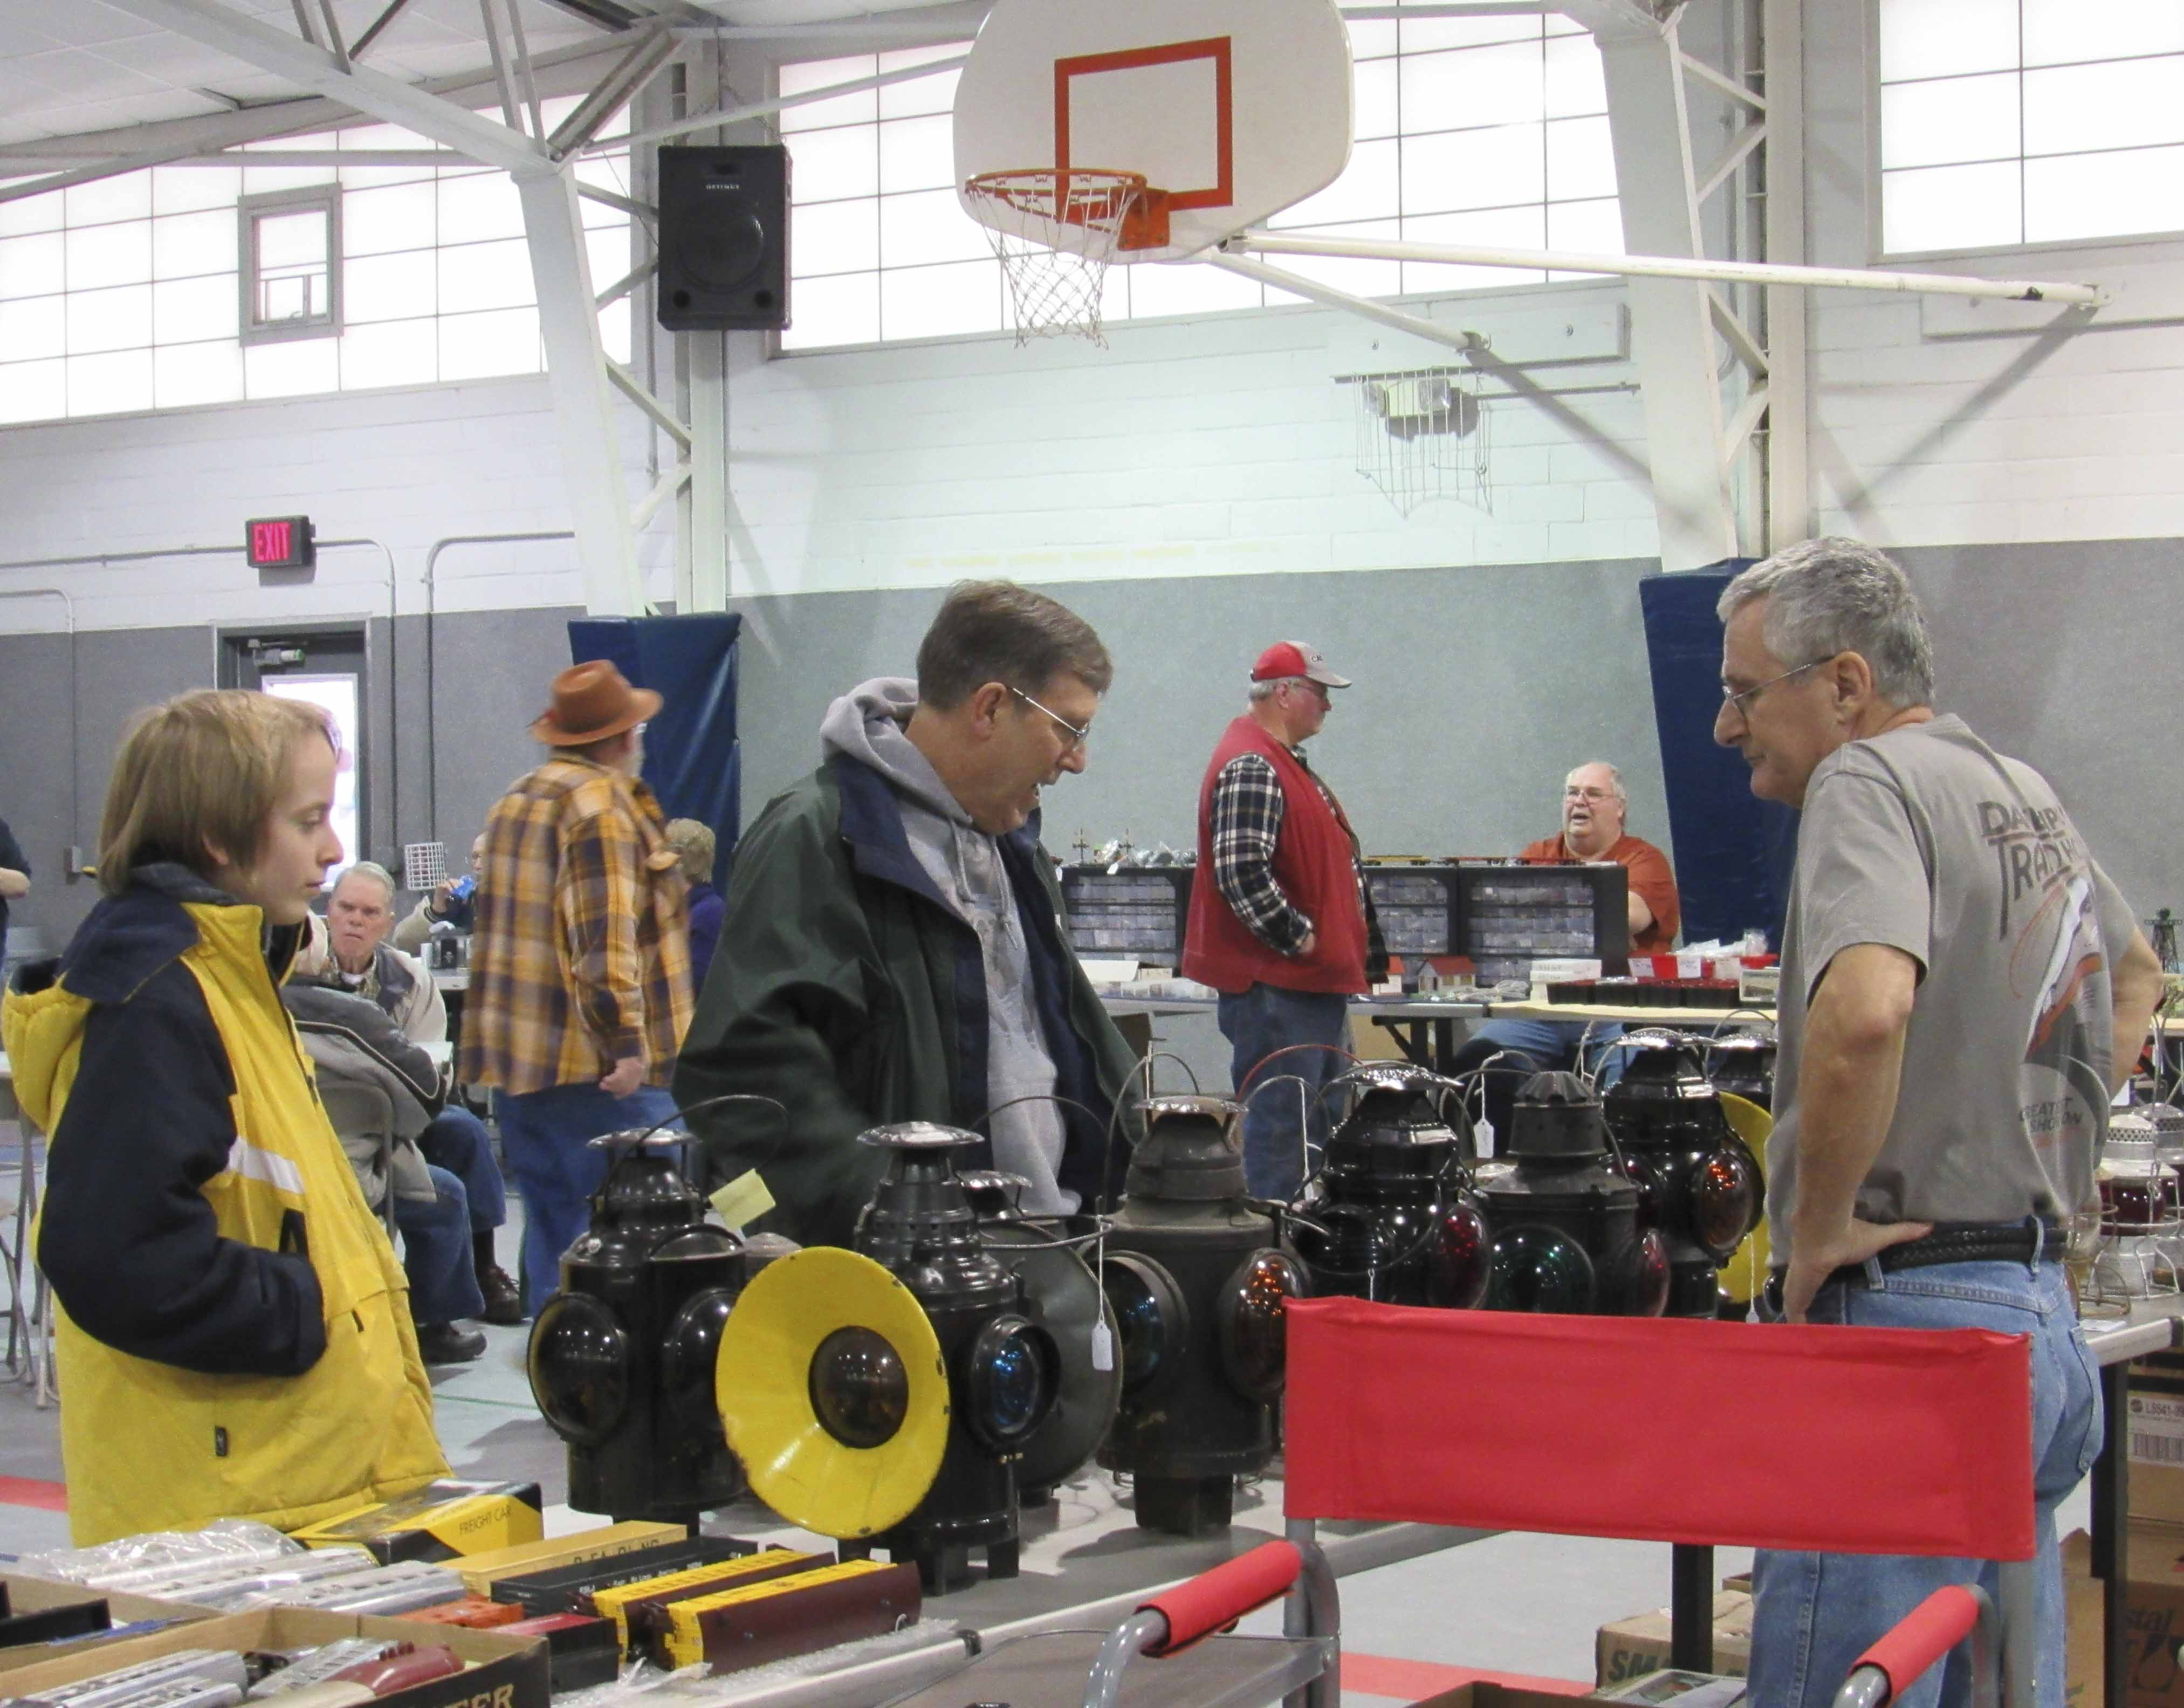 The First Annual Train show & Swap Meet was held on Jan. 29 in Monticello. This was a fundraiser for the Maquoketa Valley Model Railroad Club, which includes Monticello, Manchester, Cascade, Central City and more. Bill Lindsay of Ainsworth, Iowa visits with customers Doug Busch and Zame Hackl. Lindsay is a dealer of railroad items, such as these lanterns. (Photos by Kim Brooks)